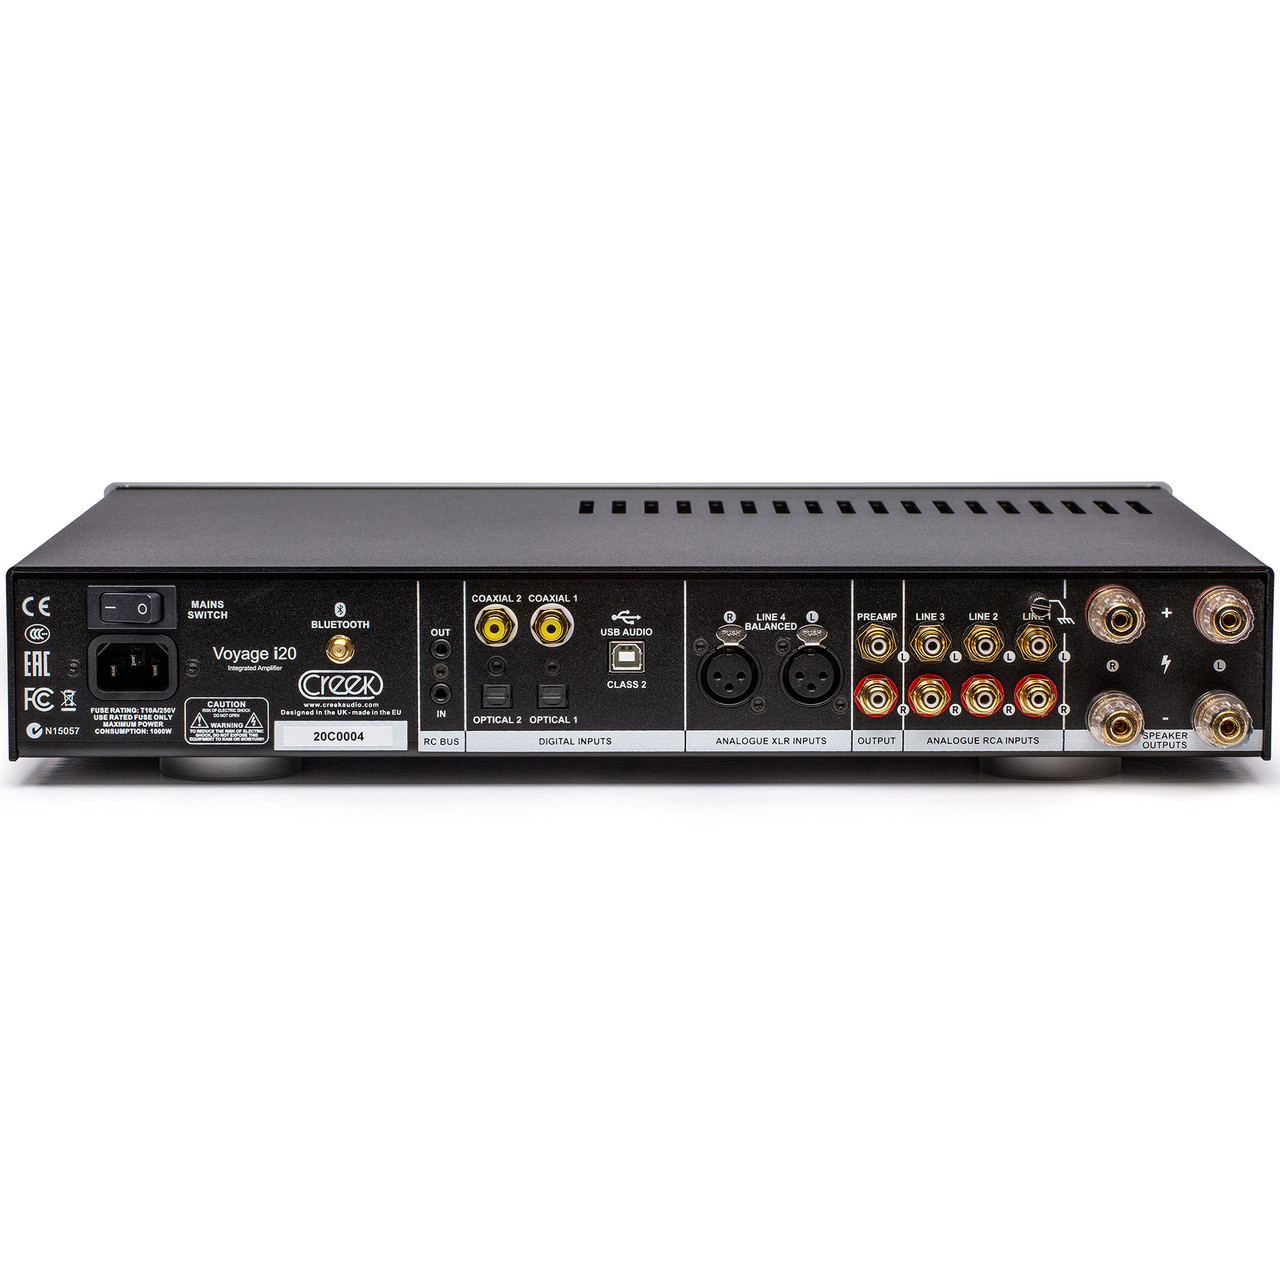 Creek Audio Voyage i20 integrated amplifier and dac